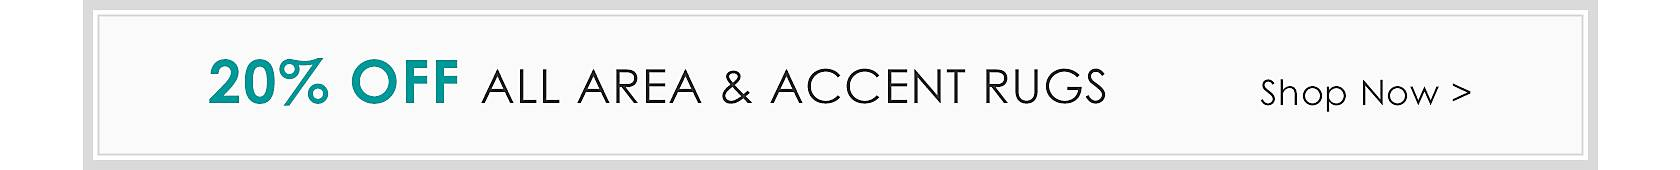 20% off all area and accent rugs - Shop Now